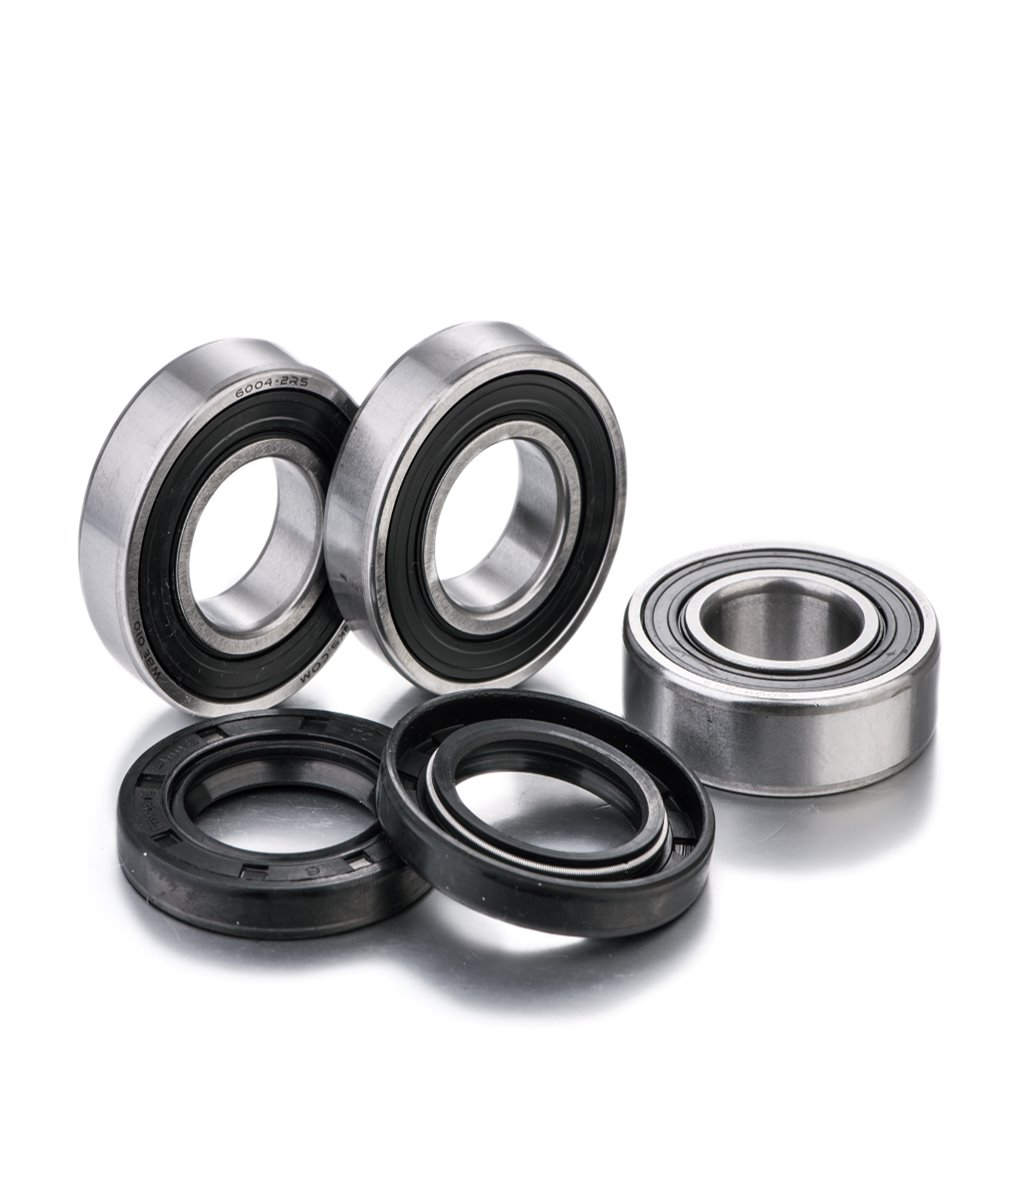 Rear Wheel Bearing Kits, Kawasaki KX 250, 1997-2002, RWK-K-117